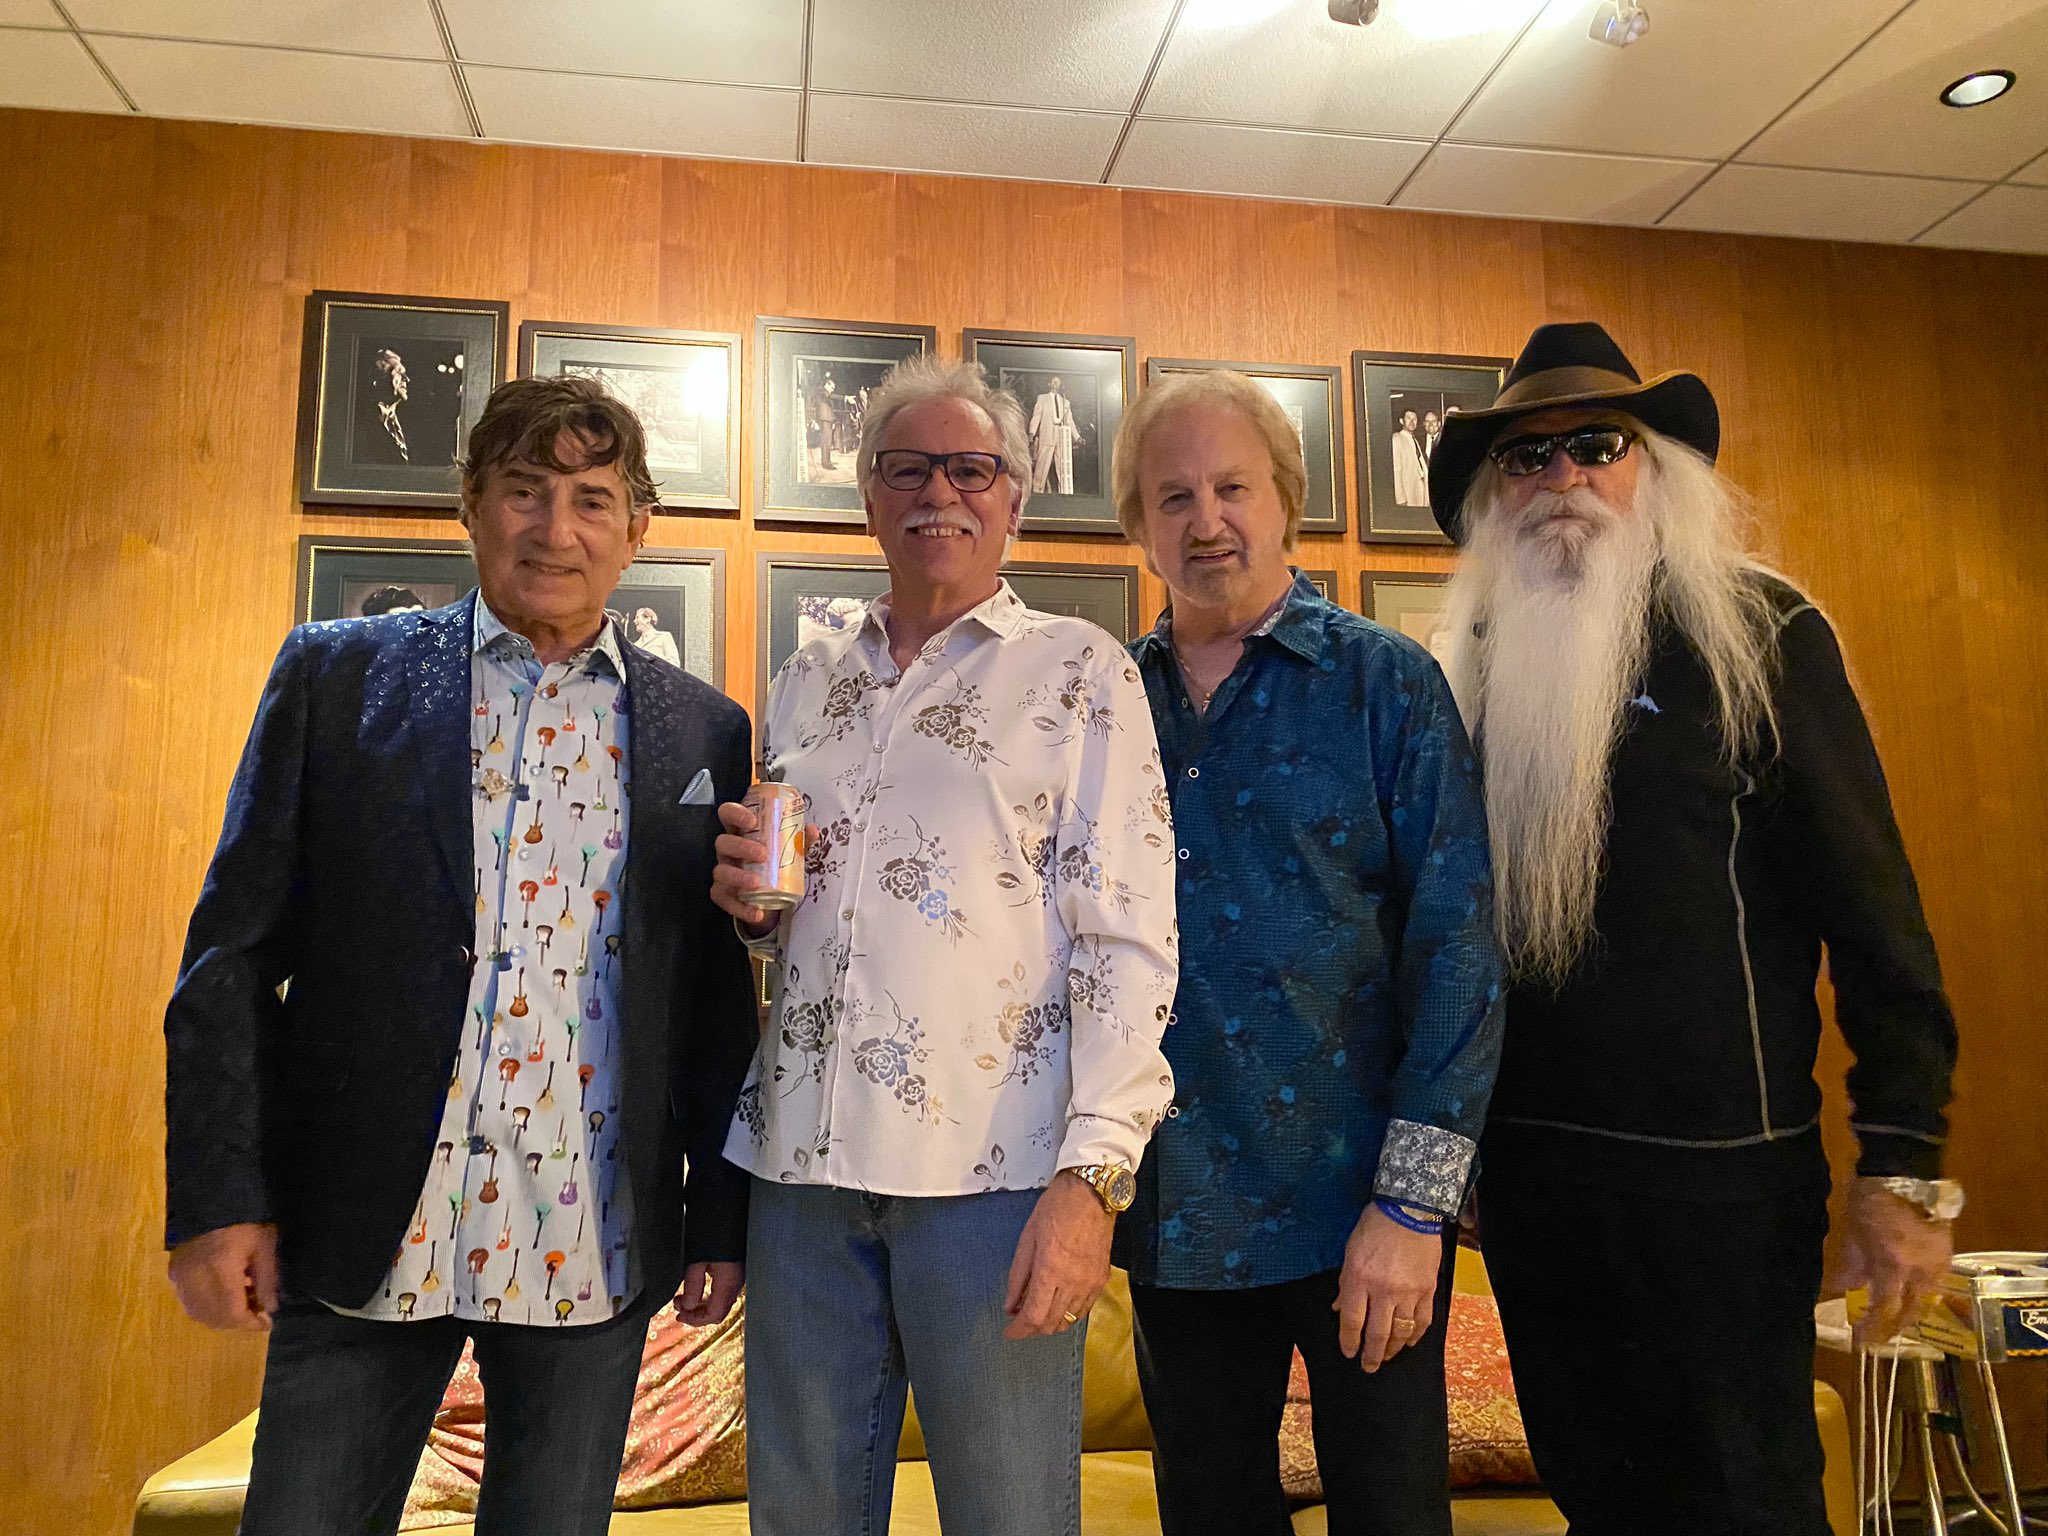 Backstage at @opry ... photos  by @sabrinacarver14 and @LNS89 https://t.co/W8Vm1ipkmA